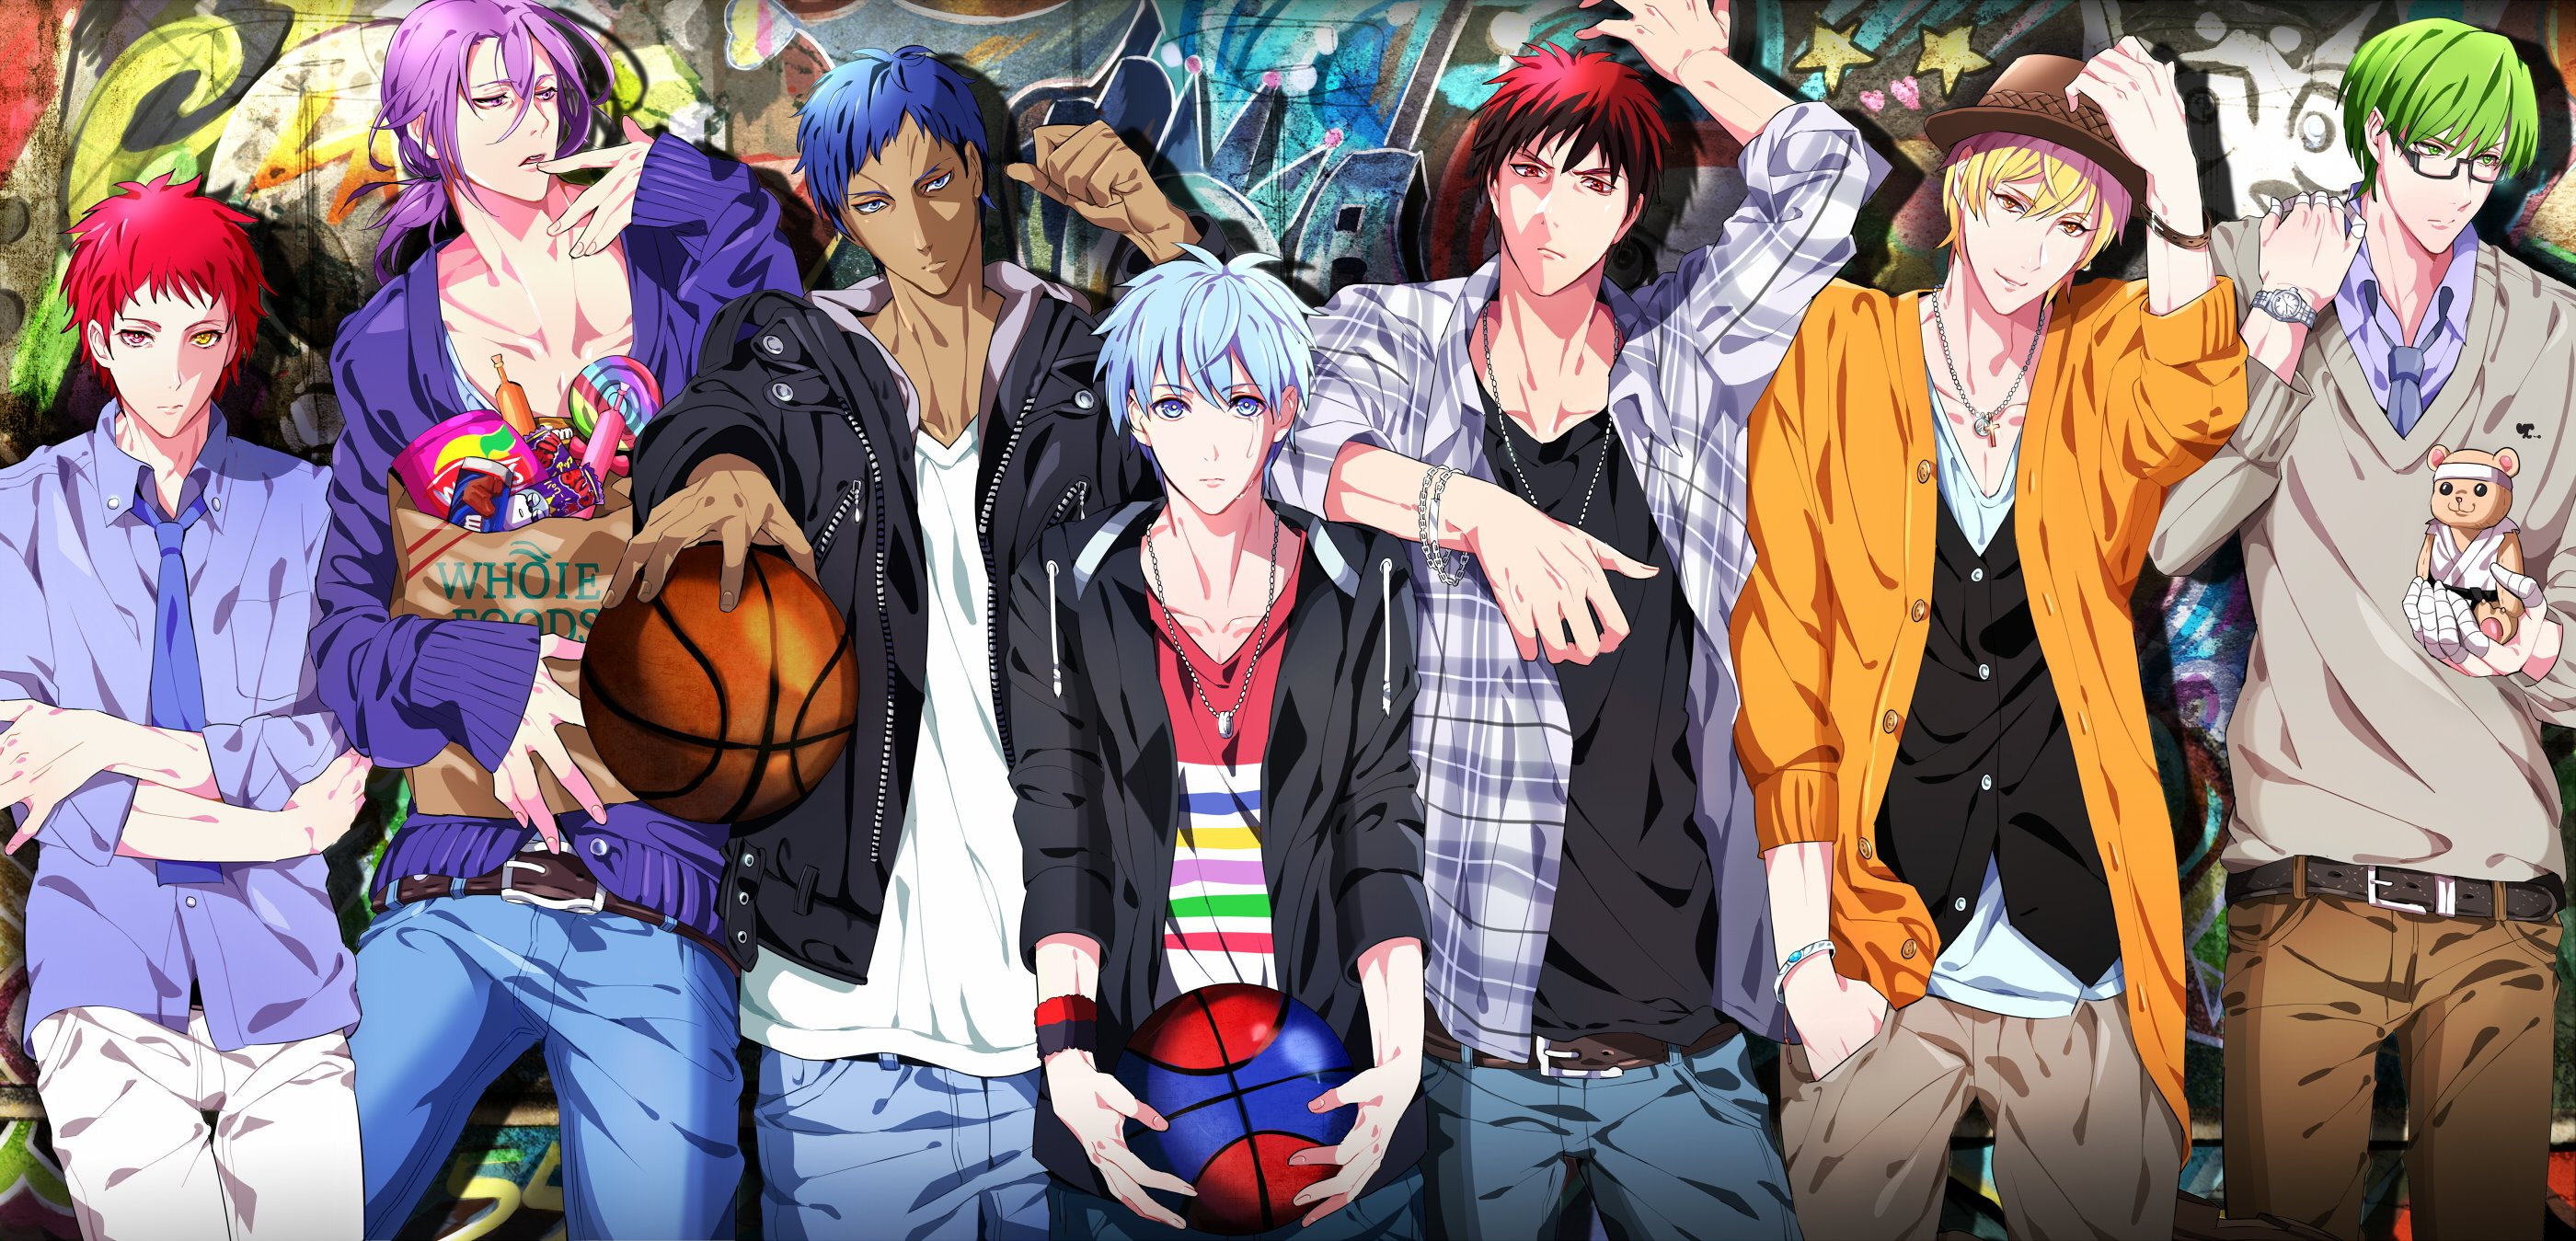 Anime series kurukono basket group boys cool blue hair boll blond